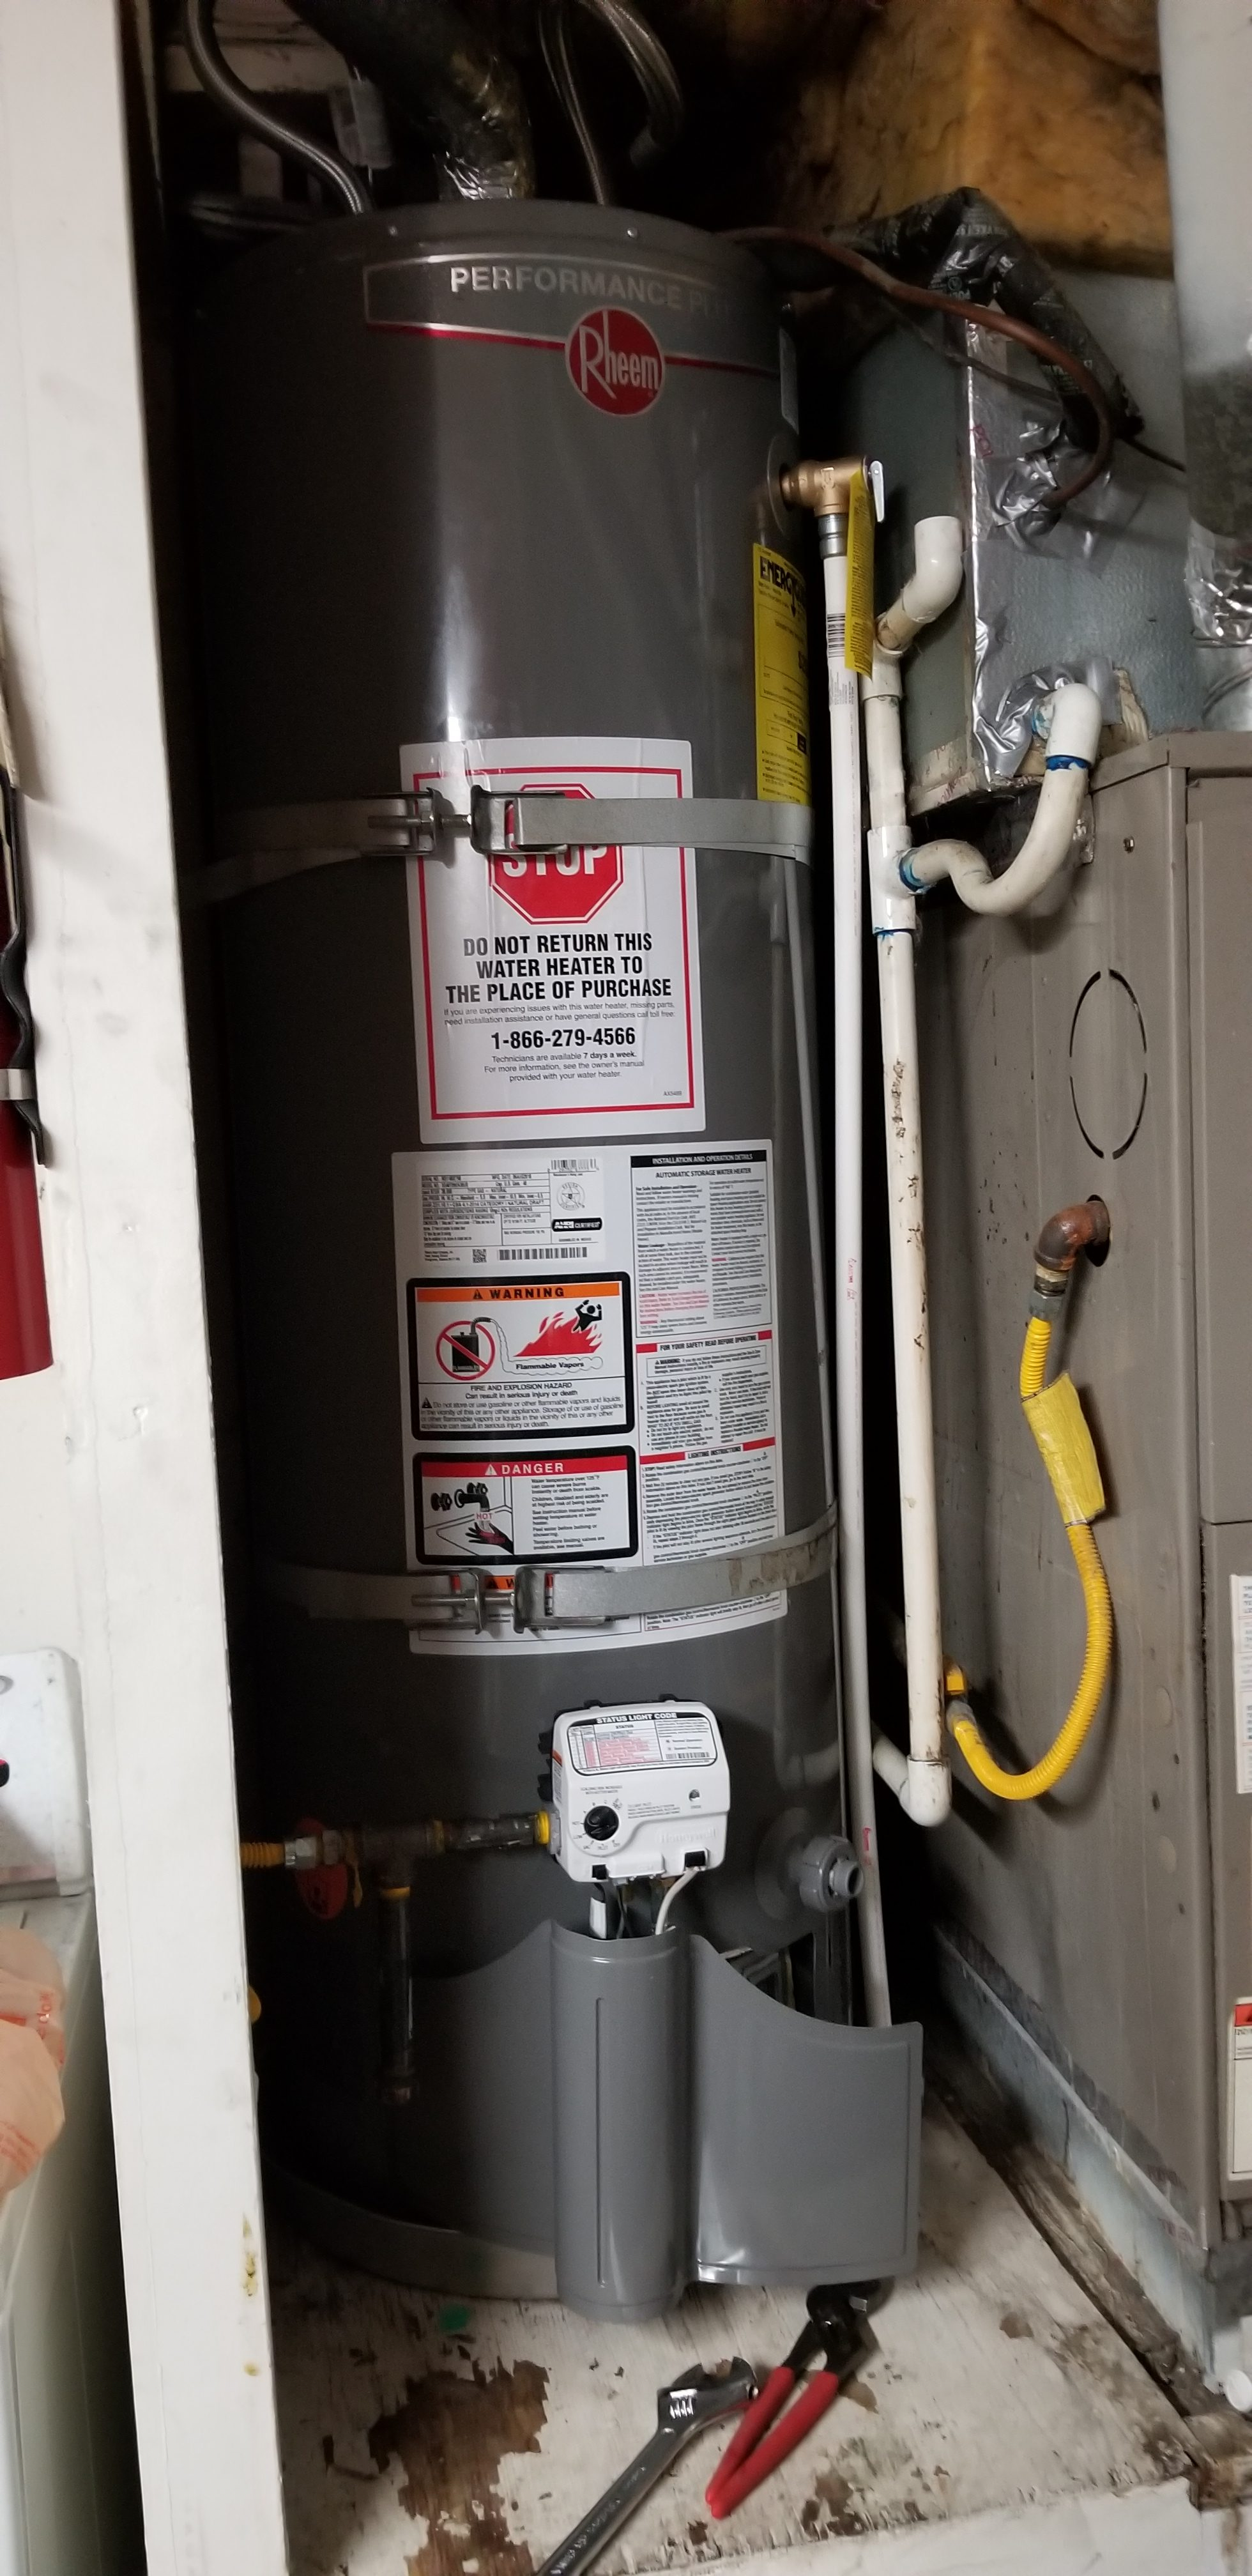 Rheem Performance Plus 40 Gal.